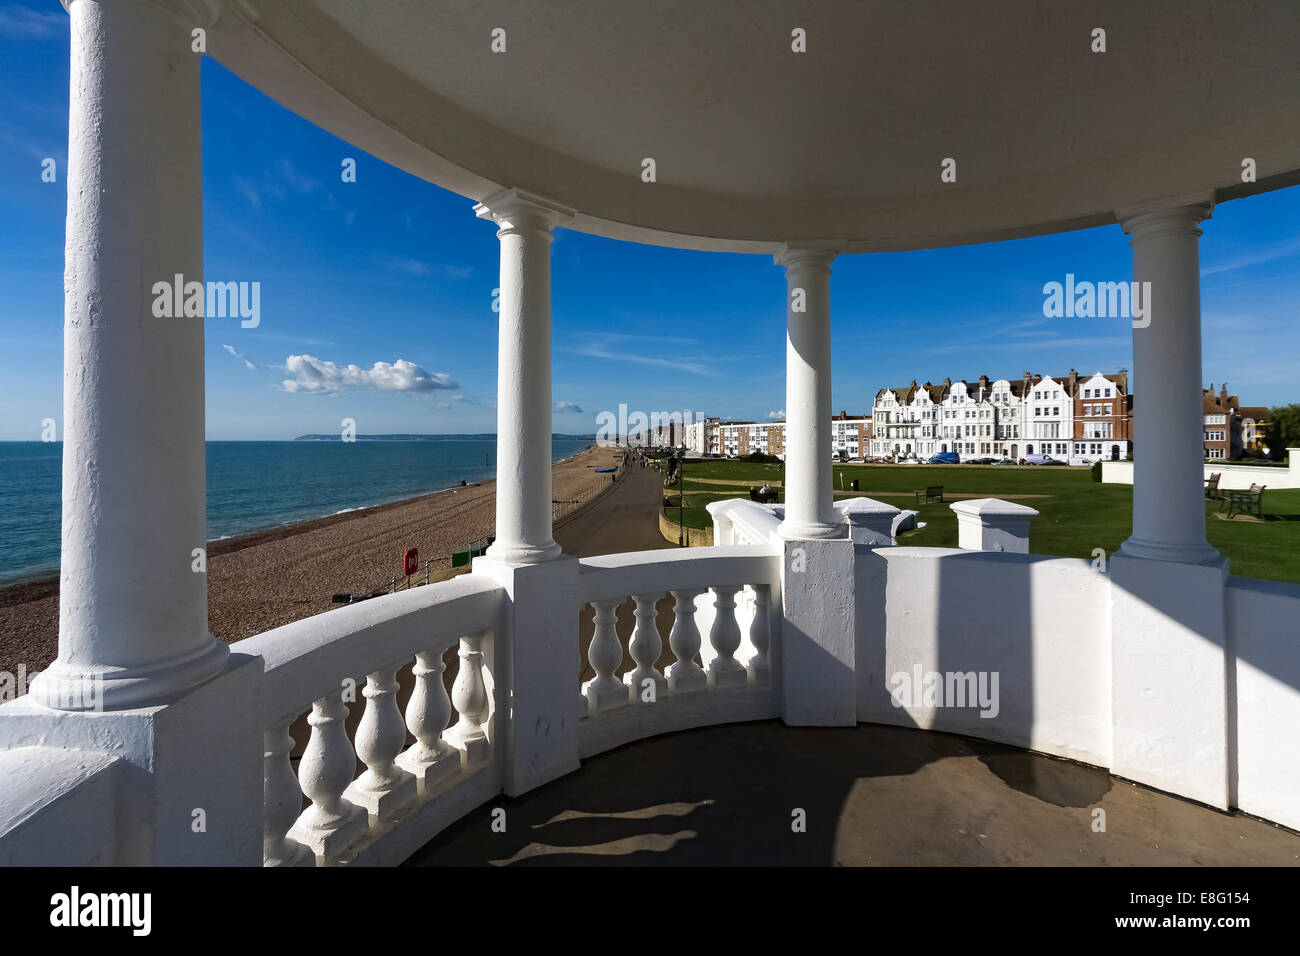 View from a colonnade in the grounds of the De la Warr Pavillion - Stock Image